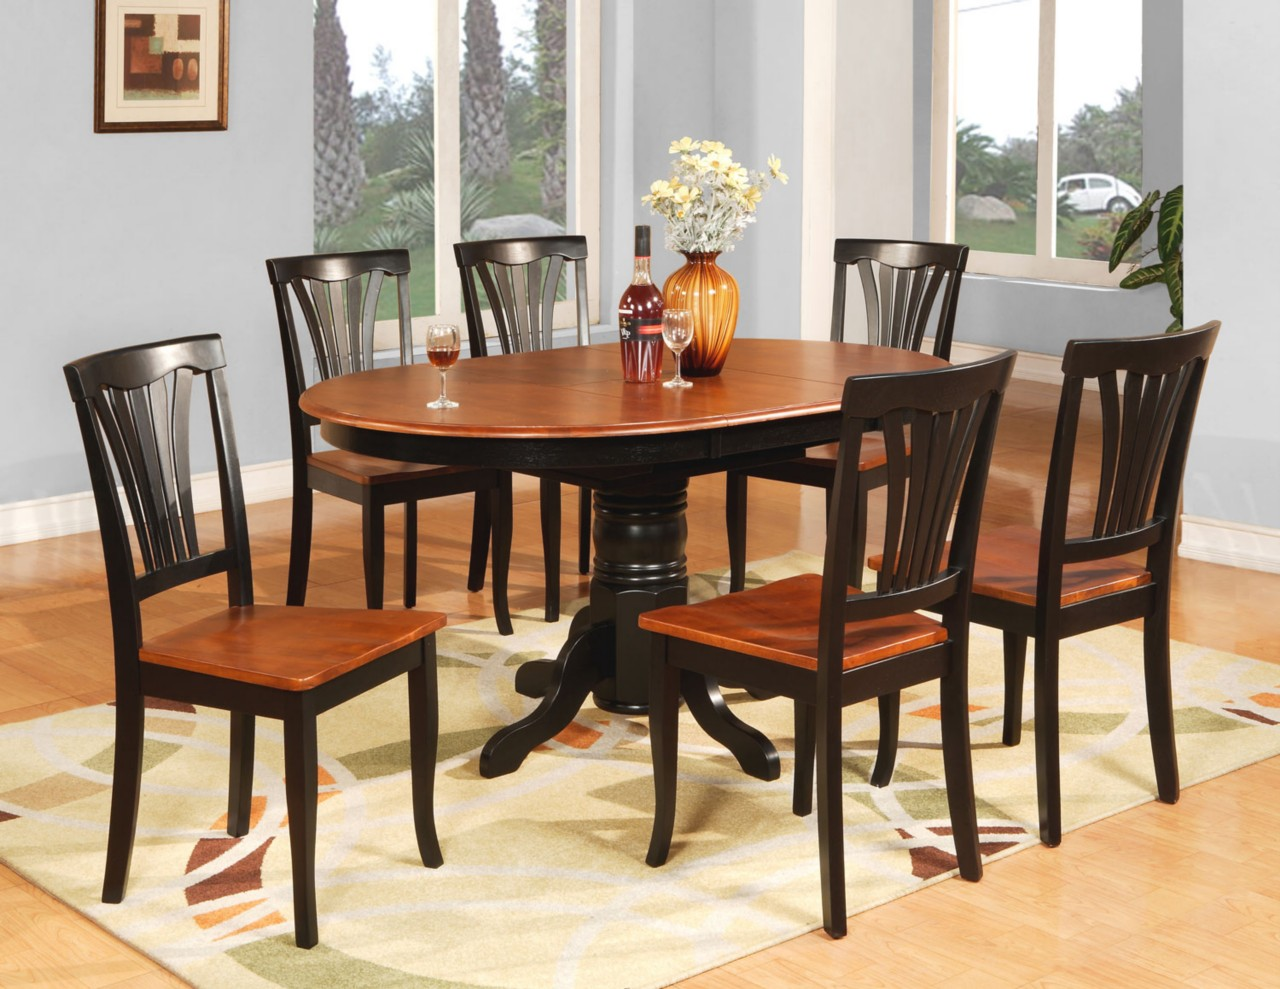 7 pc oval dinette kitchen dining room table 6 chairs ebay for Oval dining room table